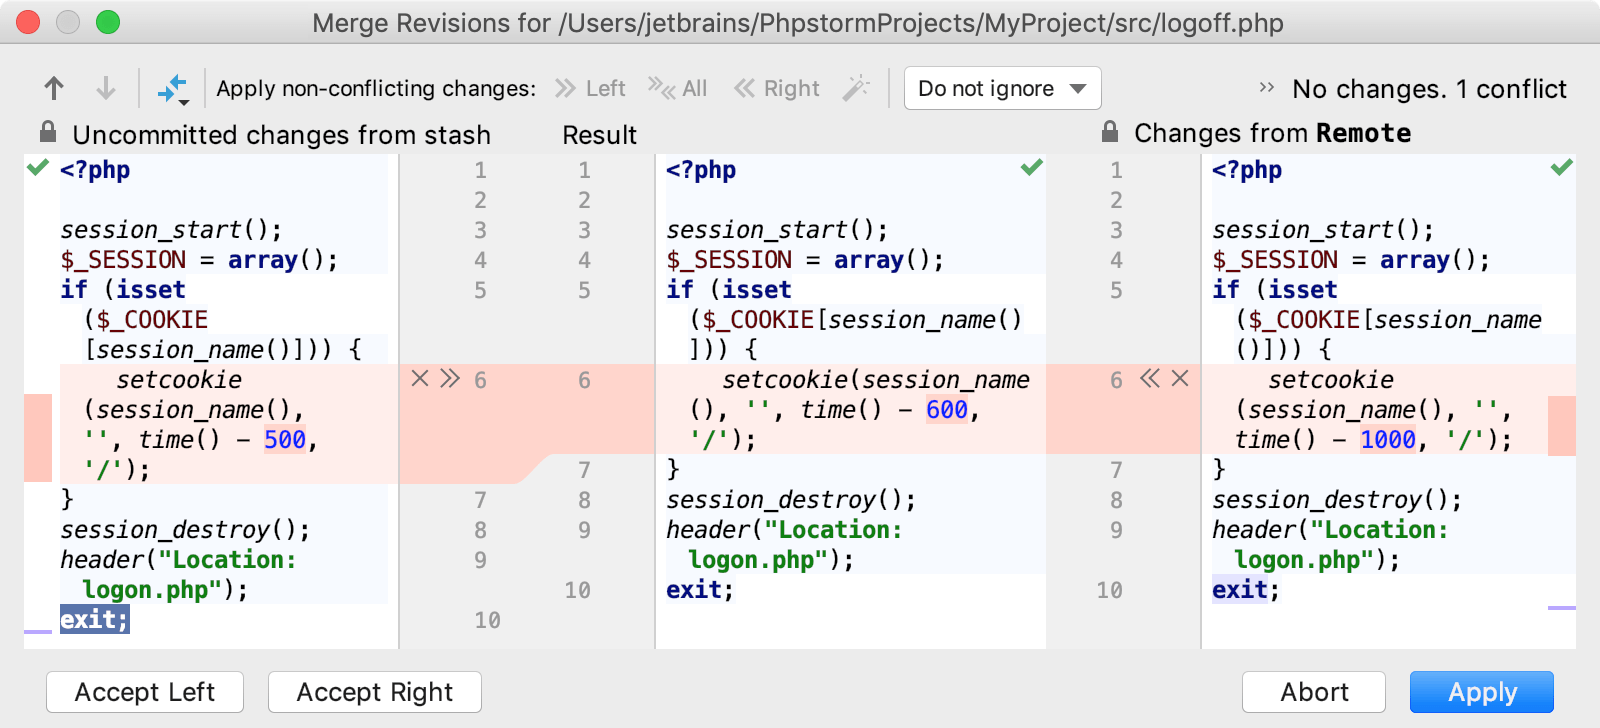 Resolve Conflicts - Help | PhpStorm